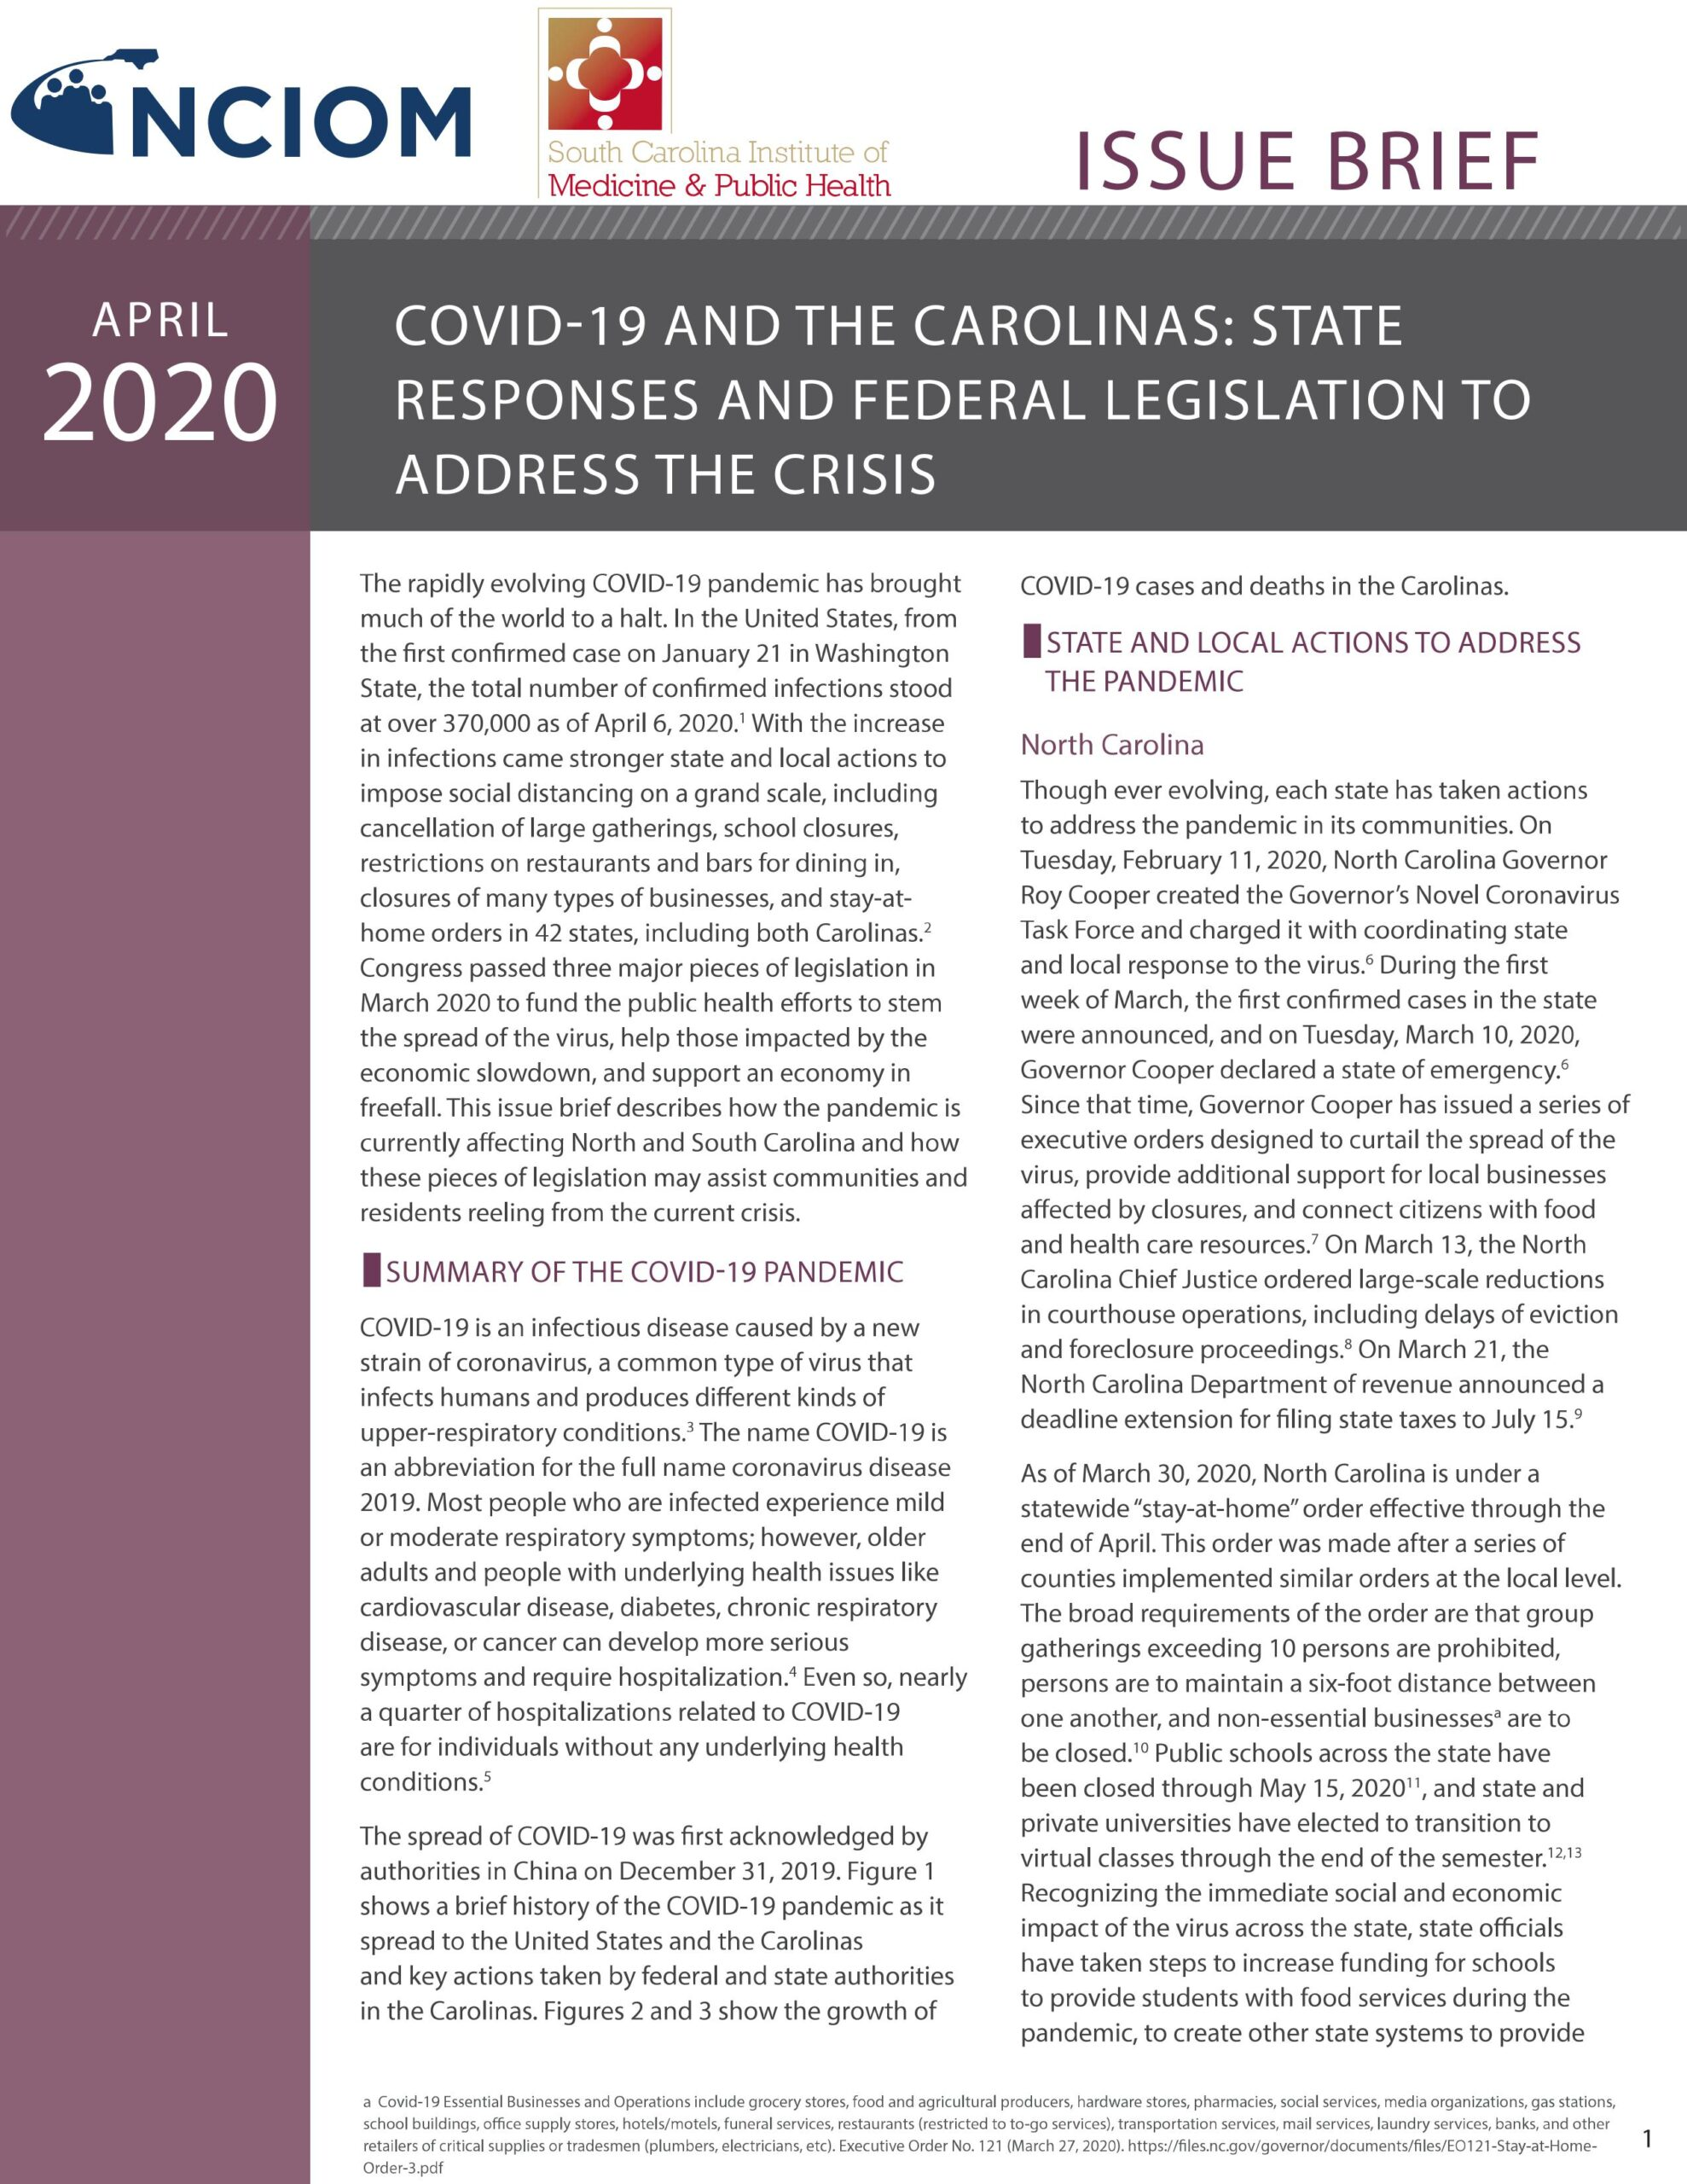 COVID-19 and the Carolinas: State Responses and Federal Legislation to Address the Crisis